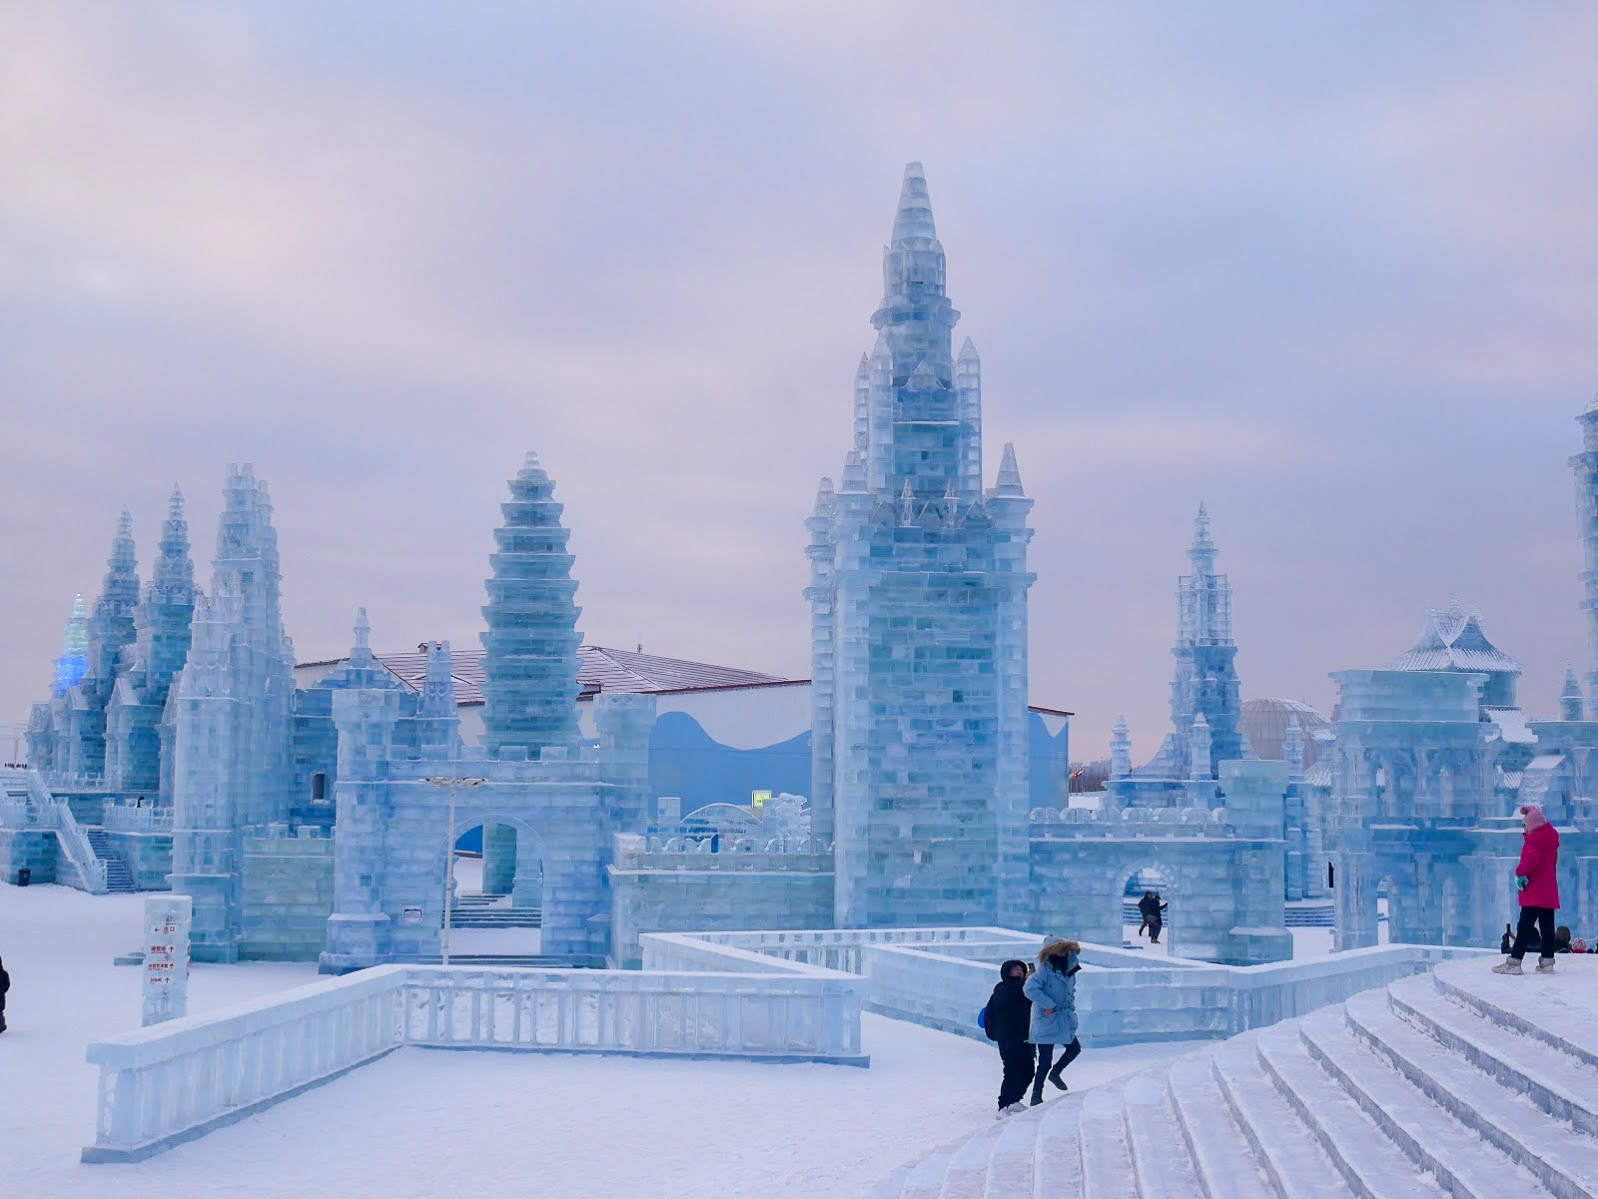 ice buildings at Harbin Ice and Snow World